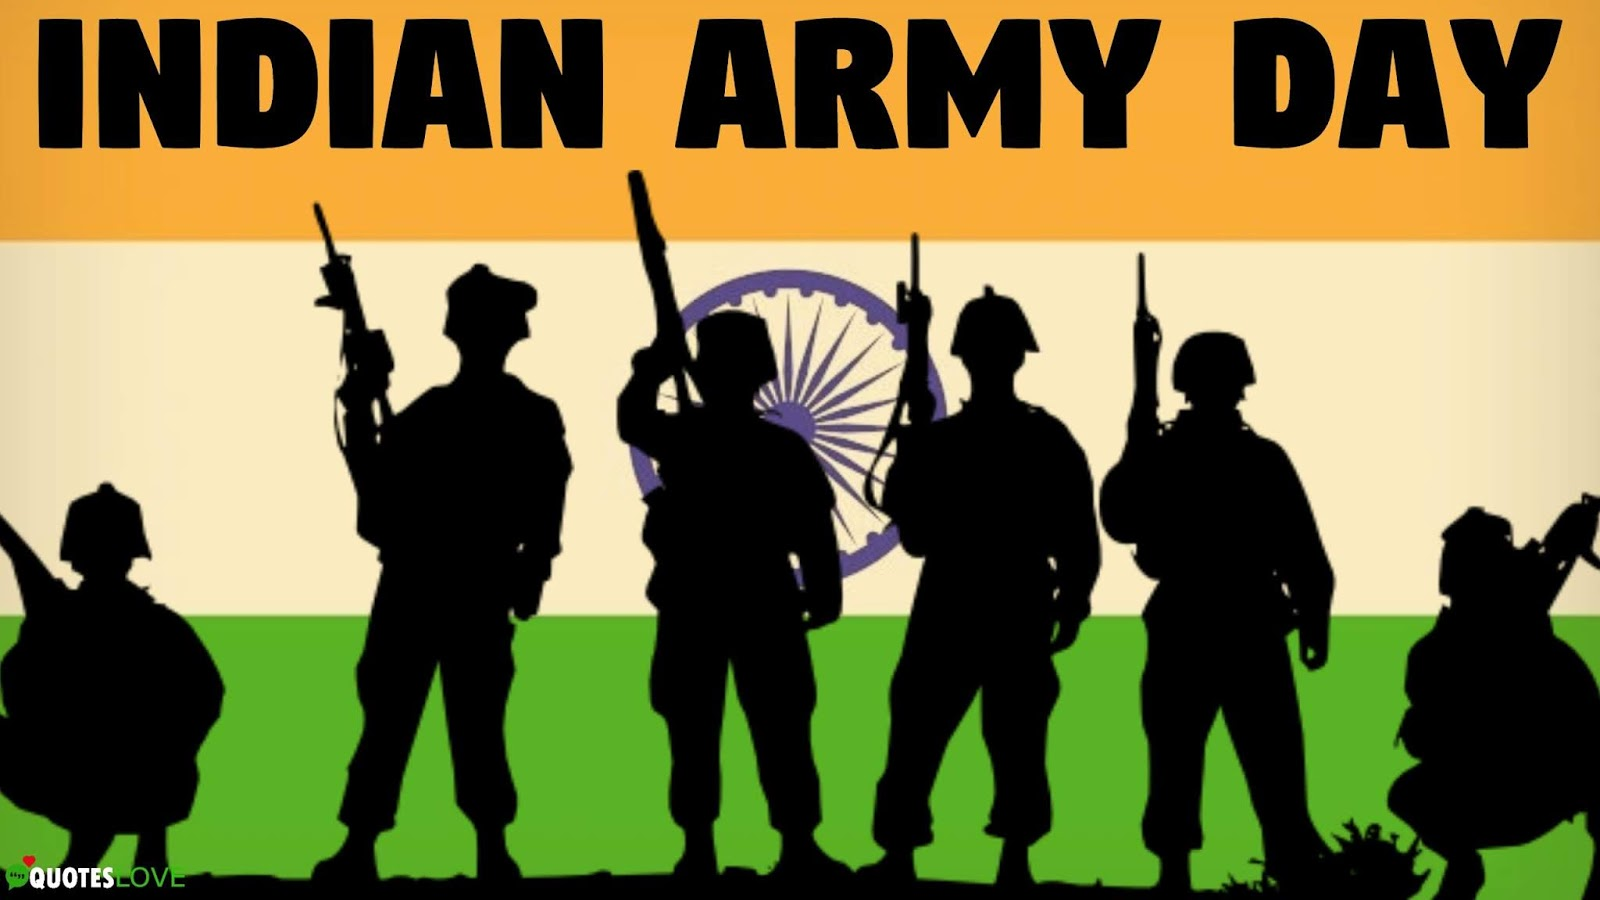 73+ (Best) Indian Army Day Quotes, Wishes, Slogans, Status, Images